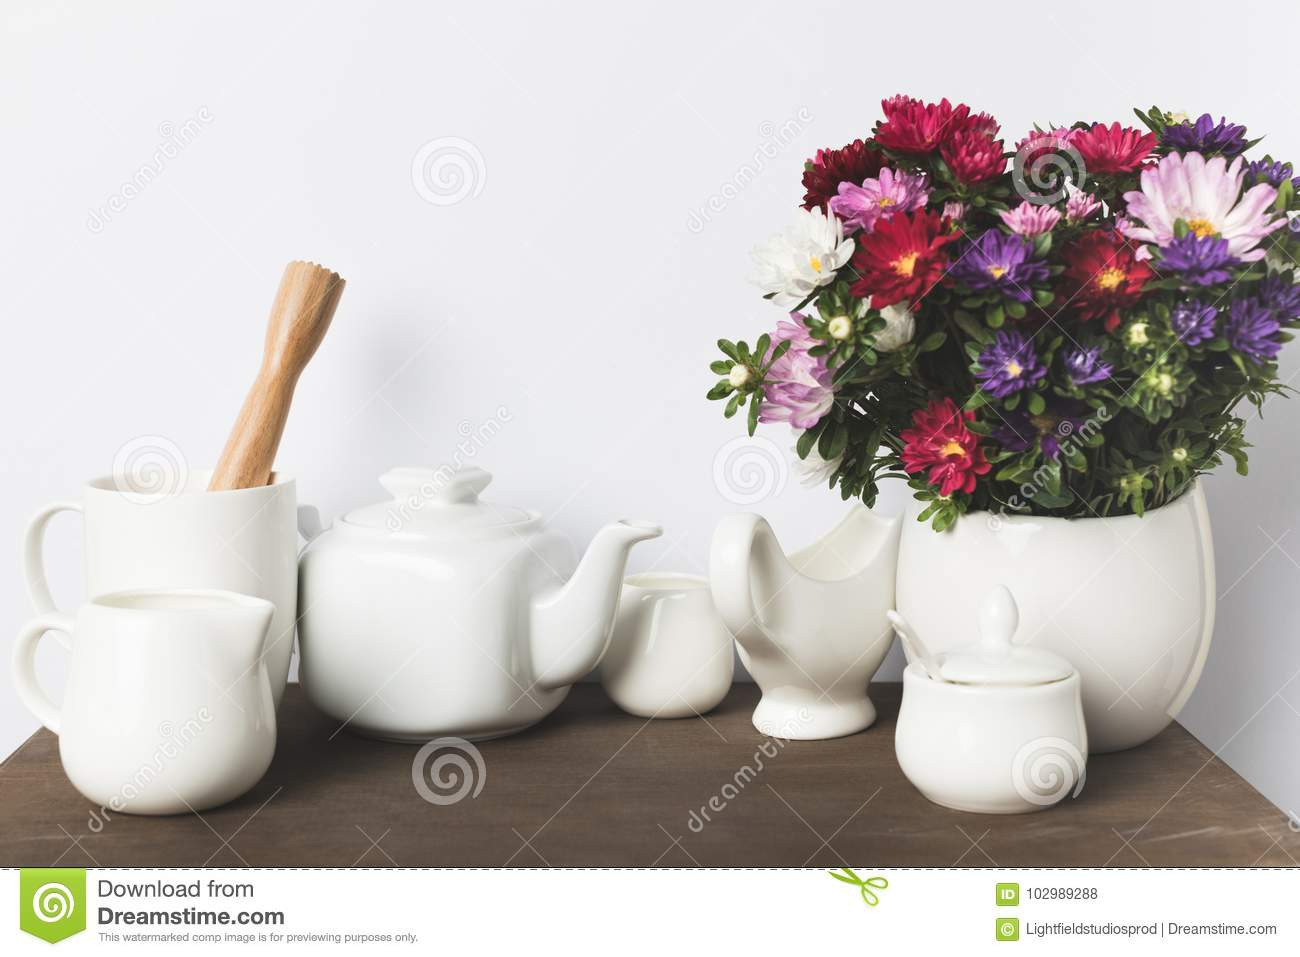 large garden vases of wooden flower vase gallery small flower garden ideas elegant until h pertaining to wooden flower vase pics kitchen utensils and flowers stock image of domestic table of wooden flower